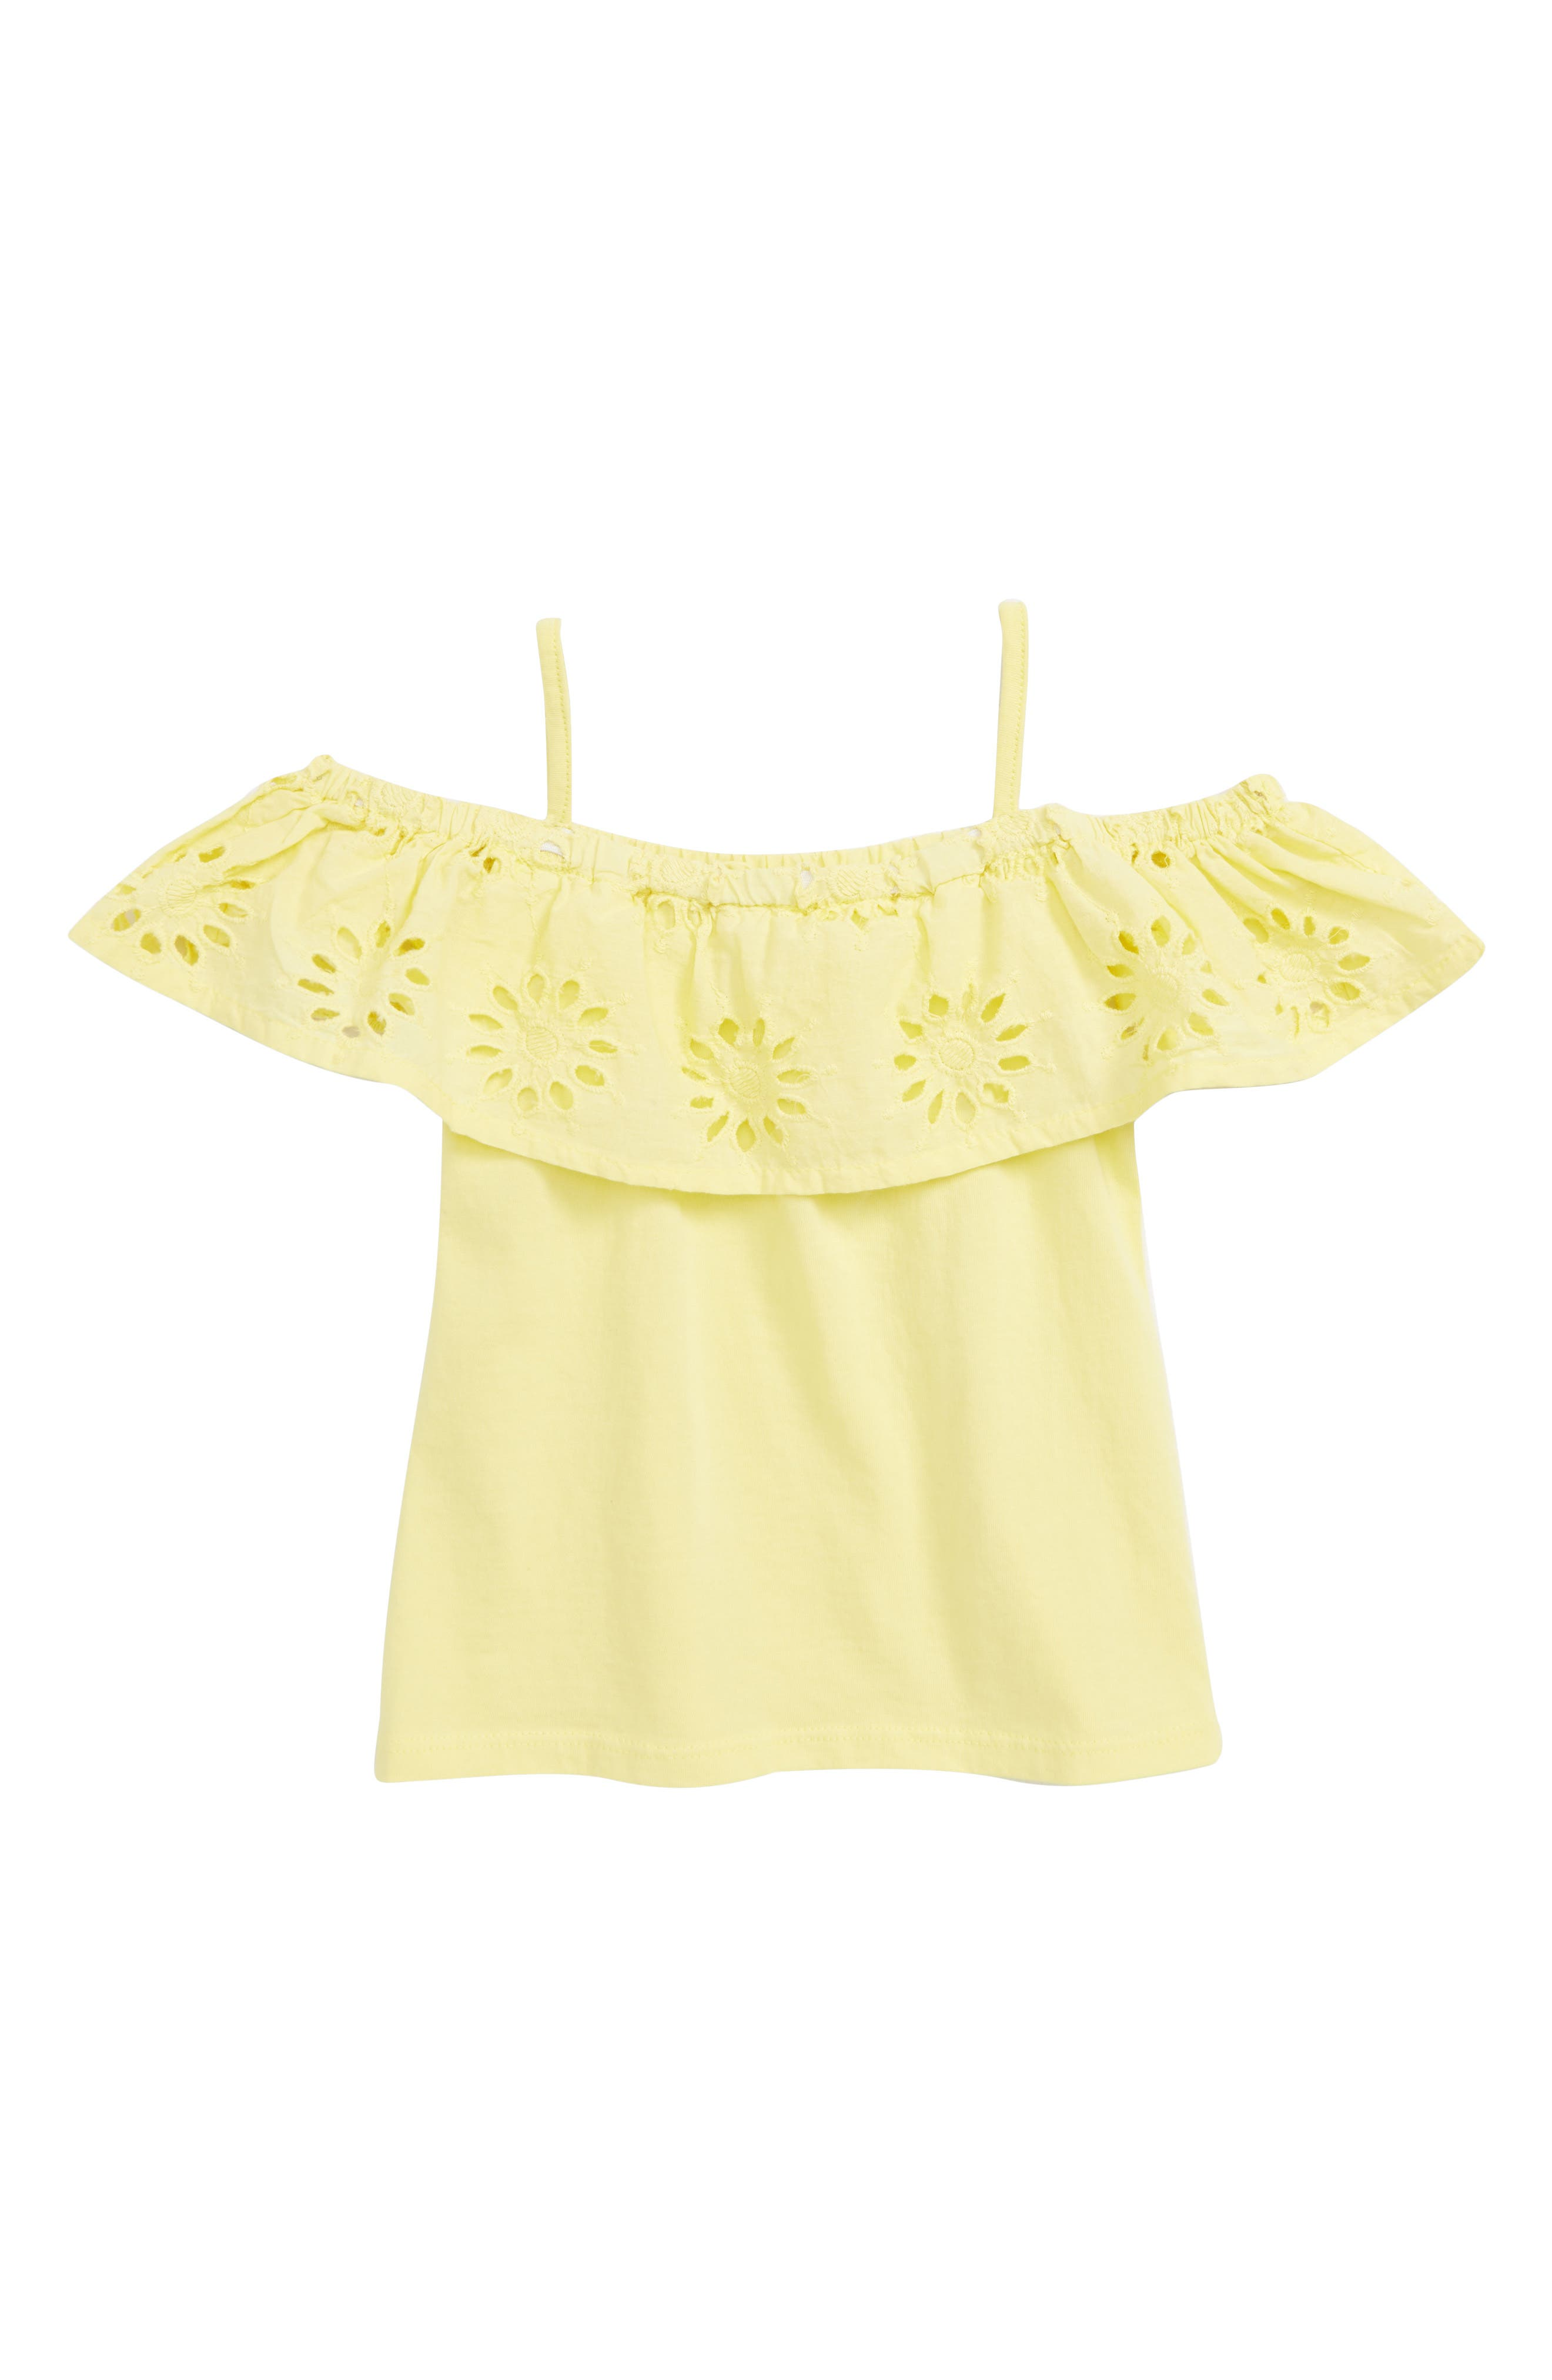 PEEK AREN'T YOU CURIOUS,                             Raelyn Embroidered Top,                             Main thumbnail 1, color,                             YELLOW